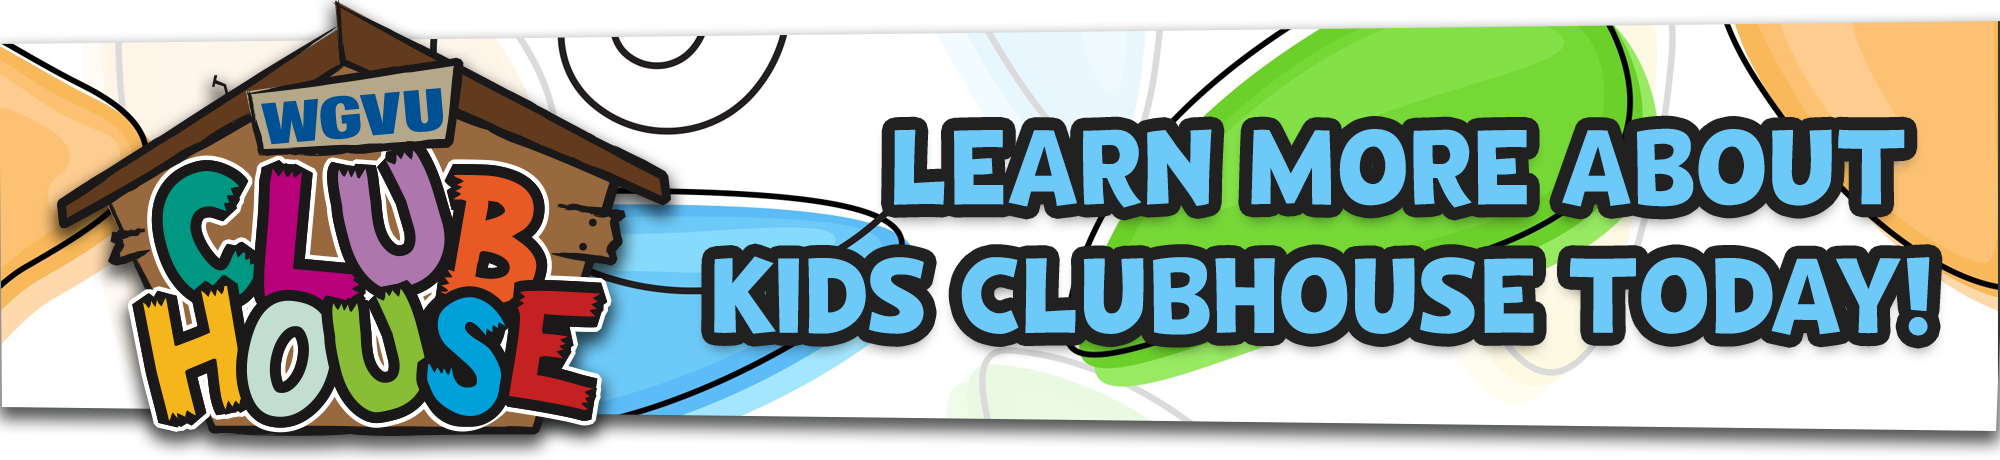 Kids Clubhouse | Learn more